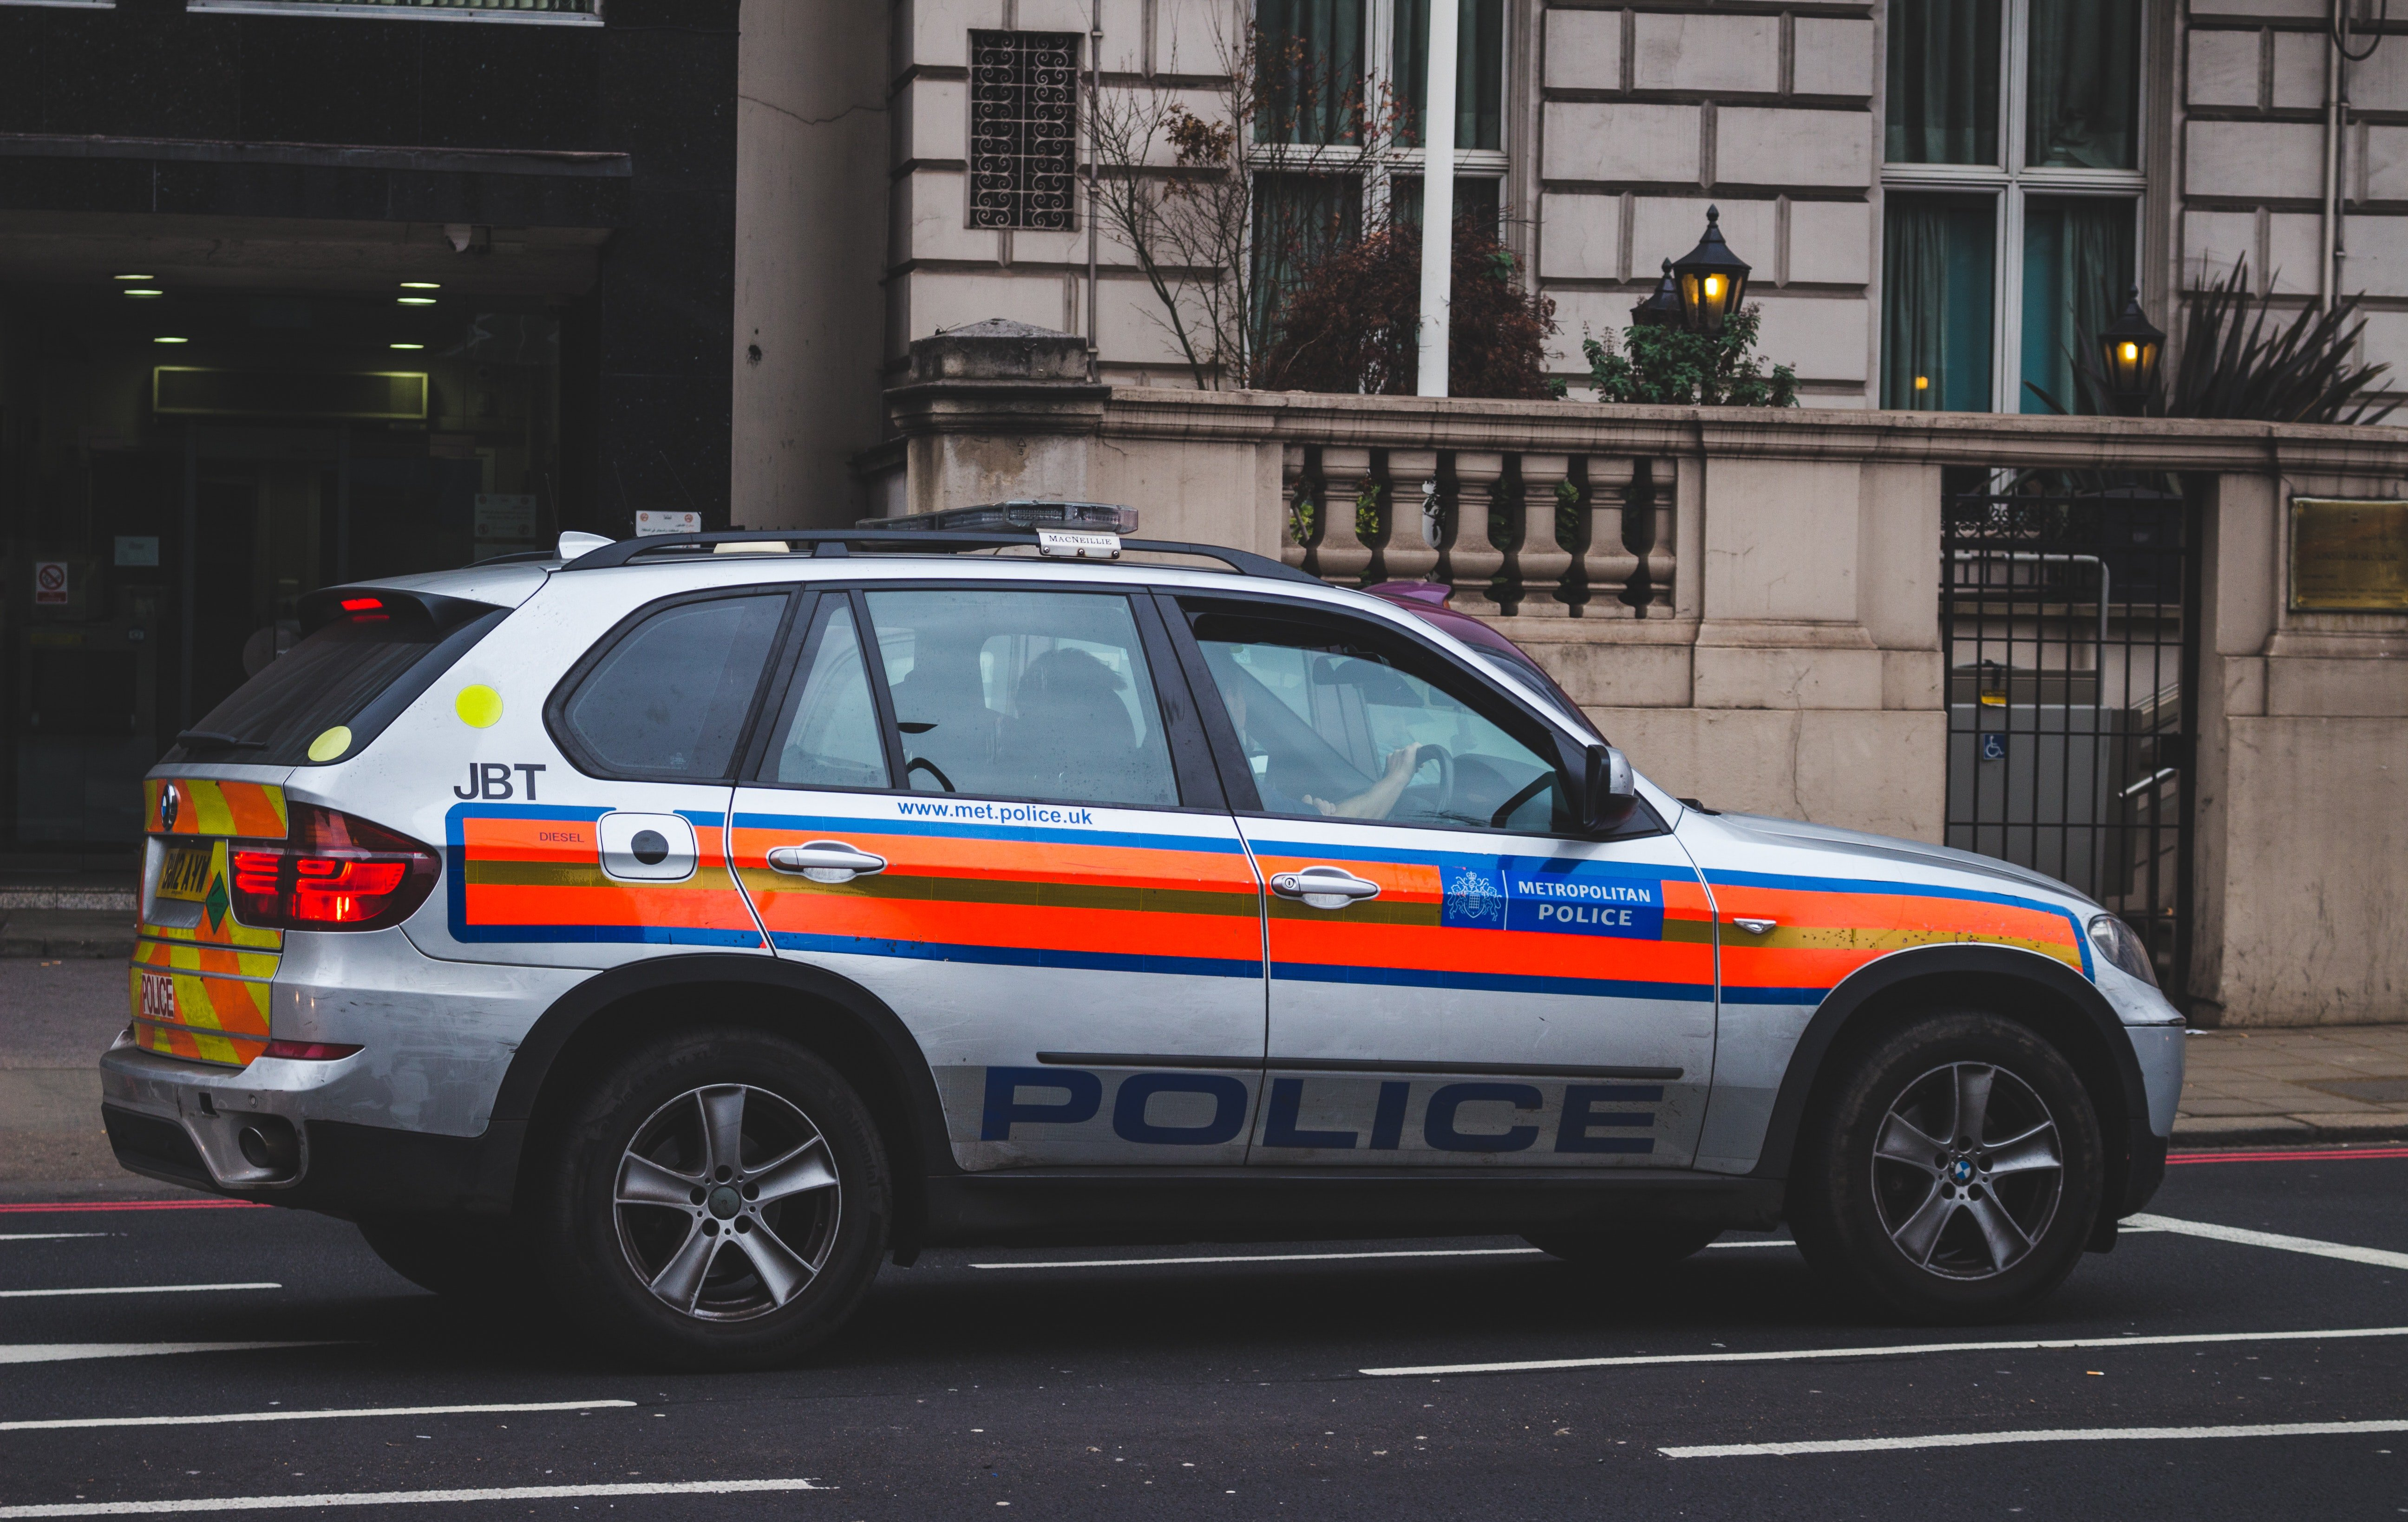 Pictured - An image of a police vehicle on the roadside   Source: Pexels